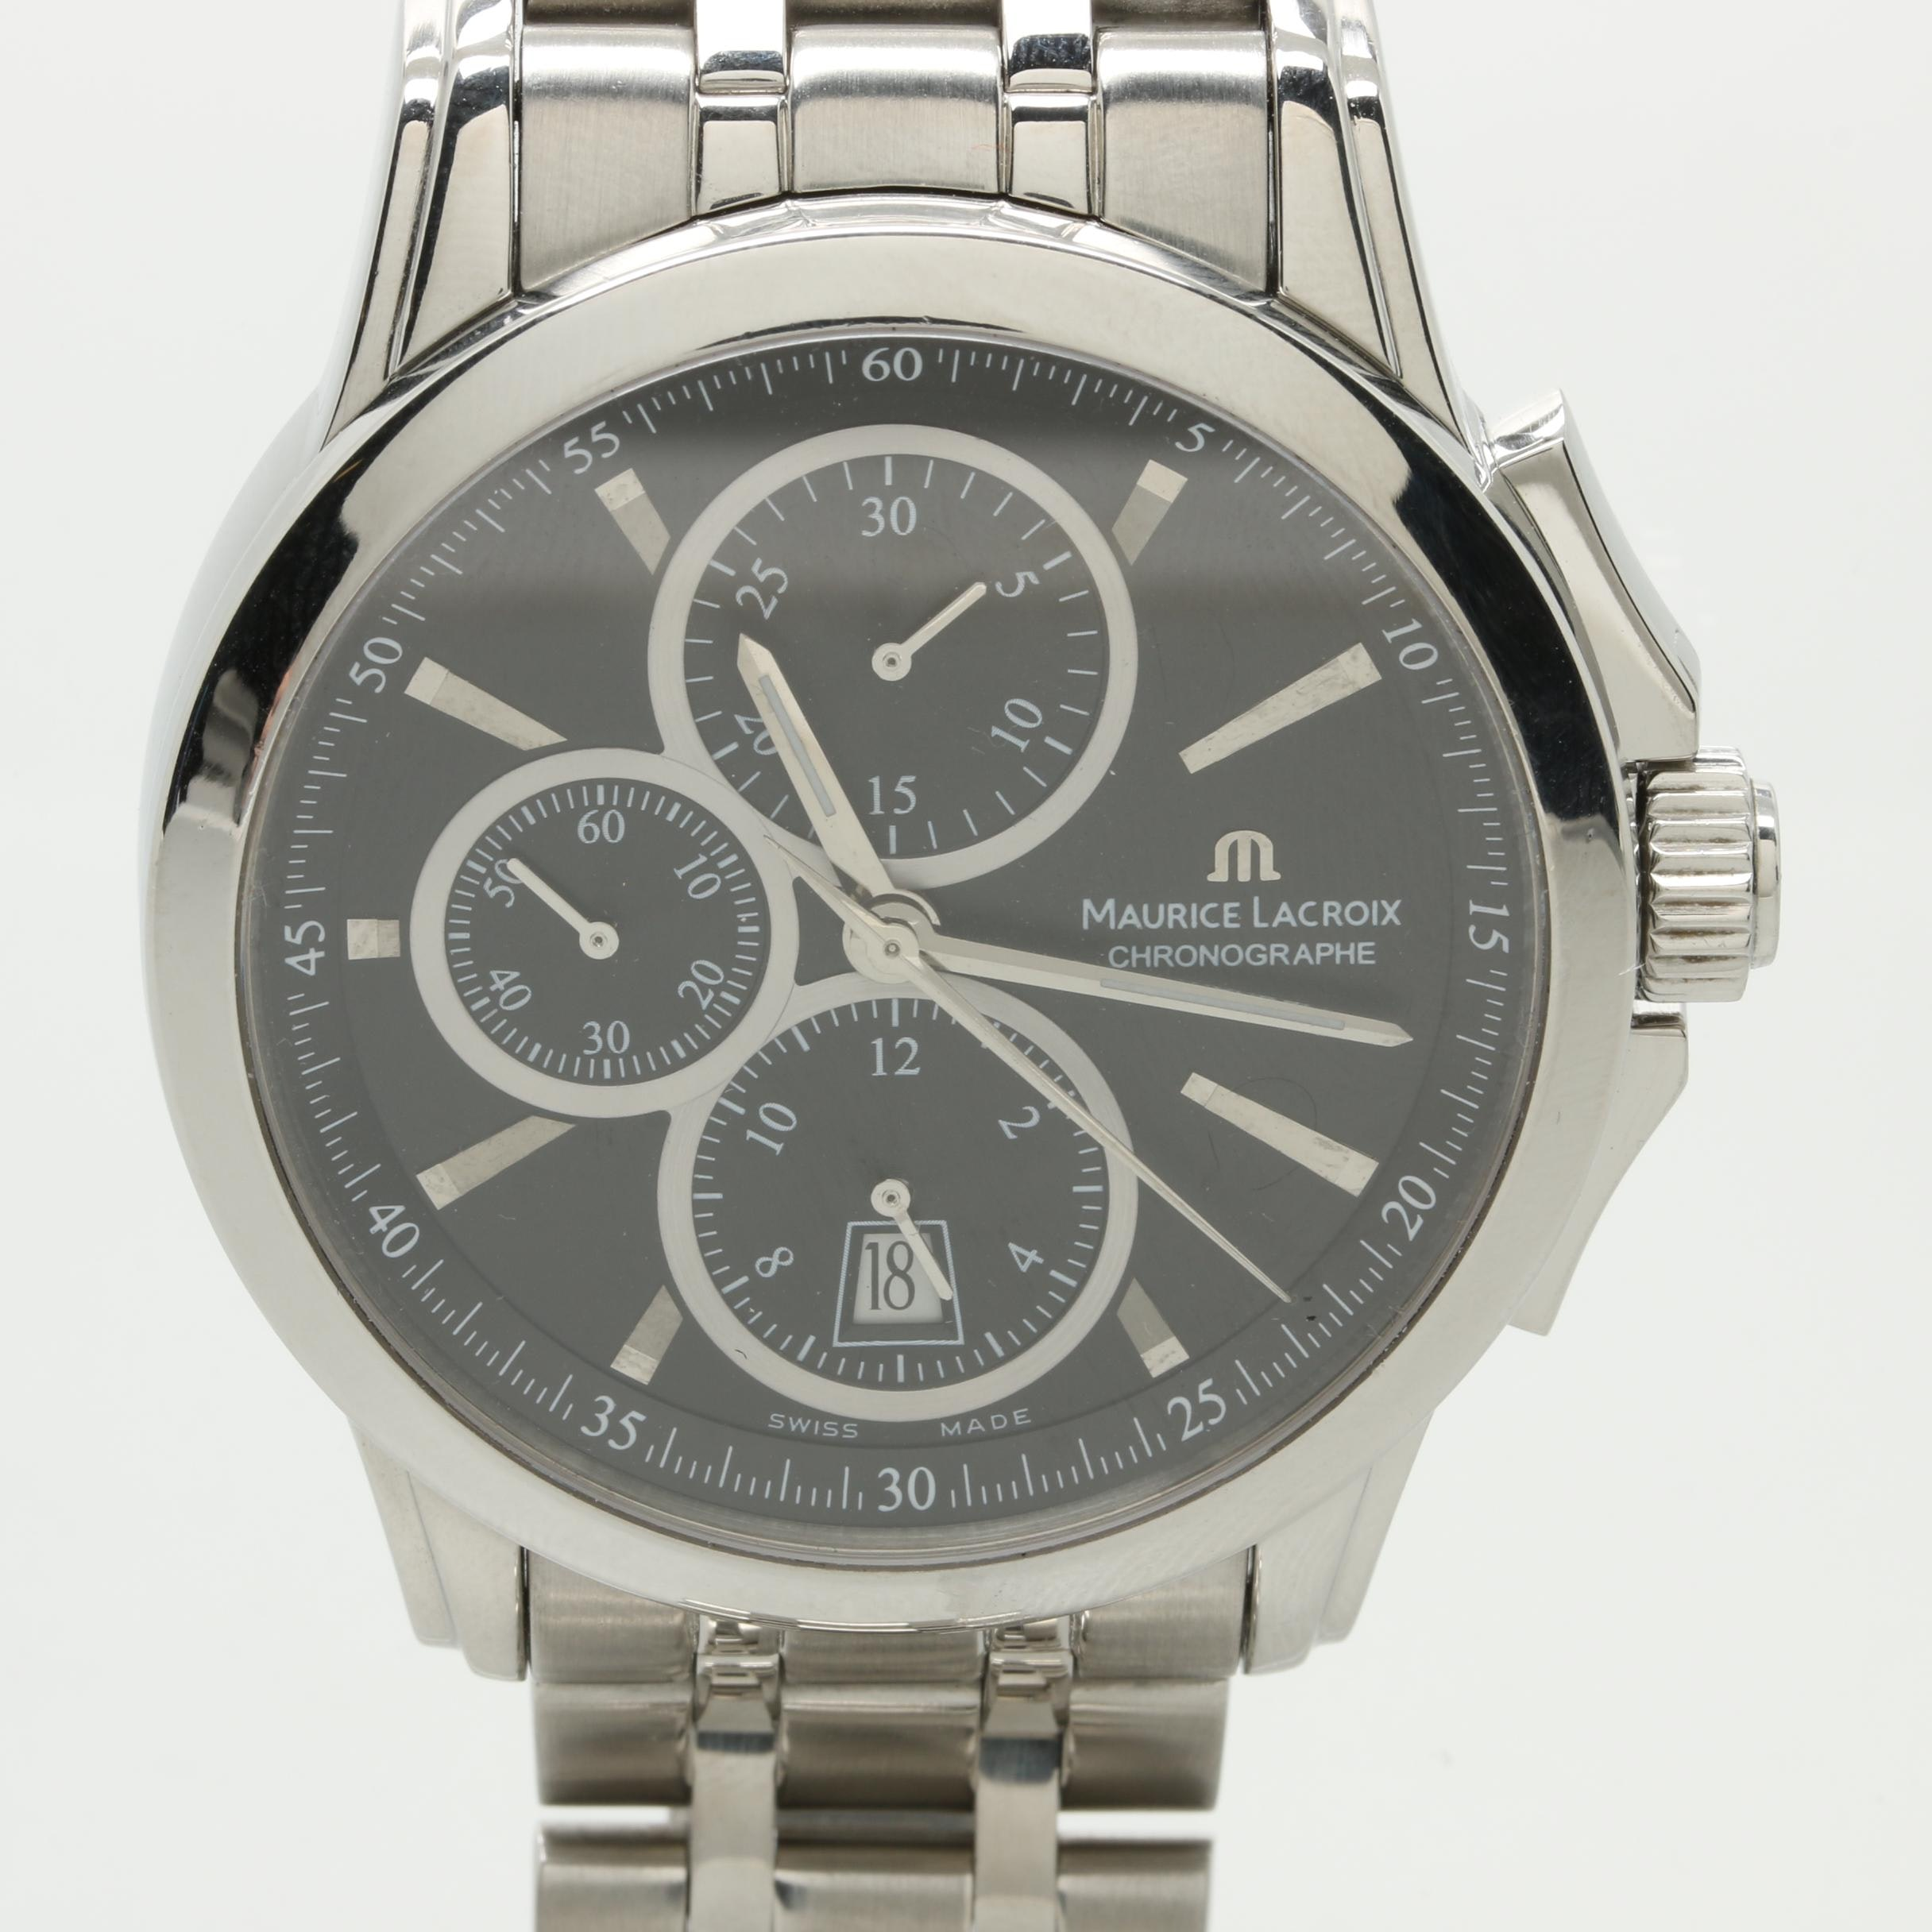 Maurice Lacroix Stainless Steel Chronograph Wristwatch